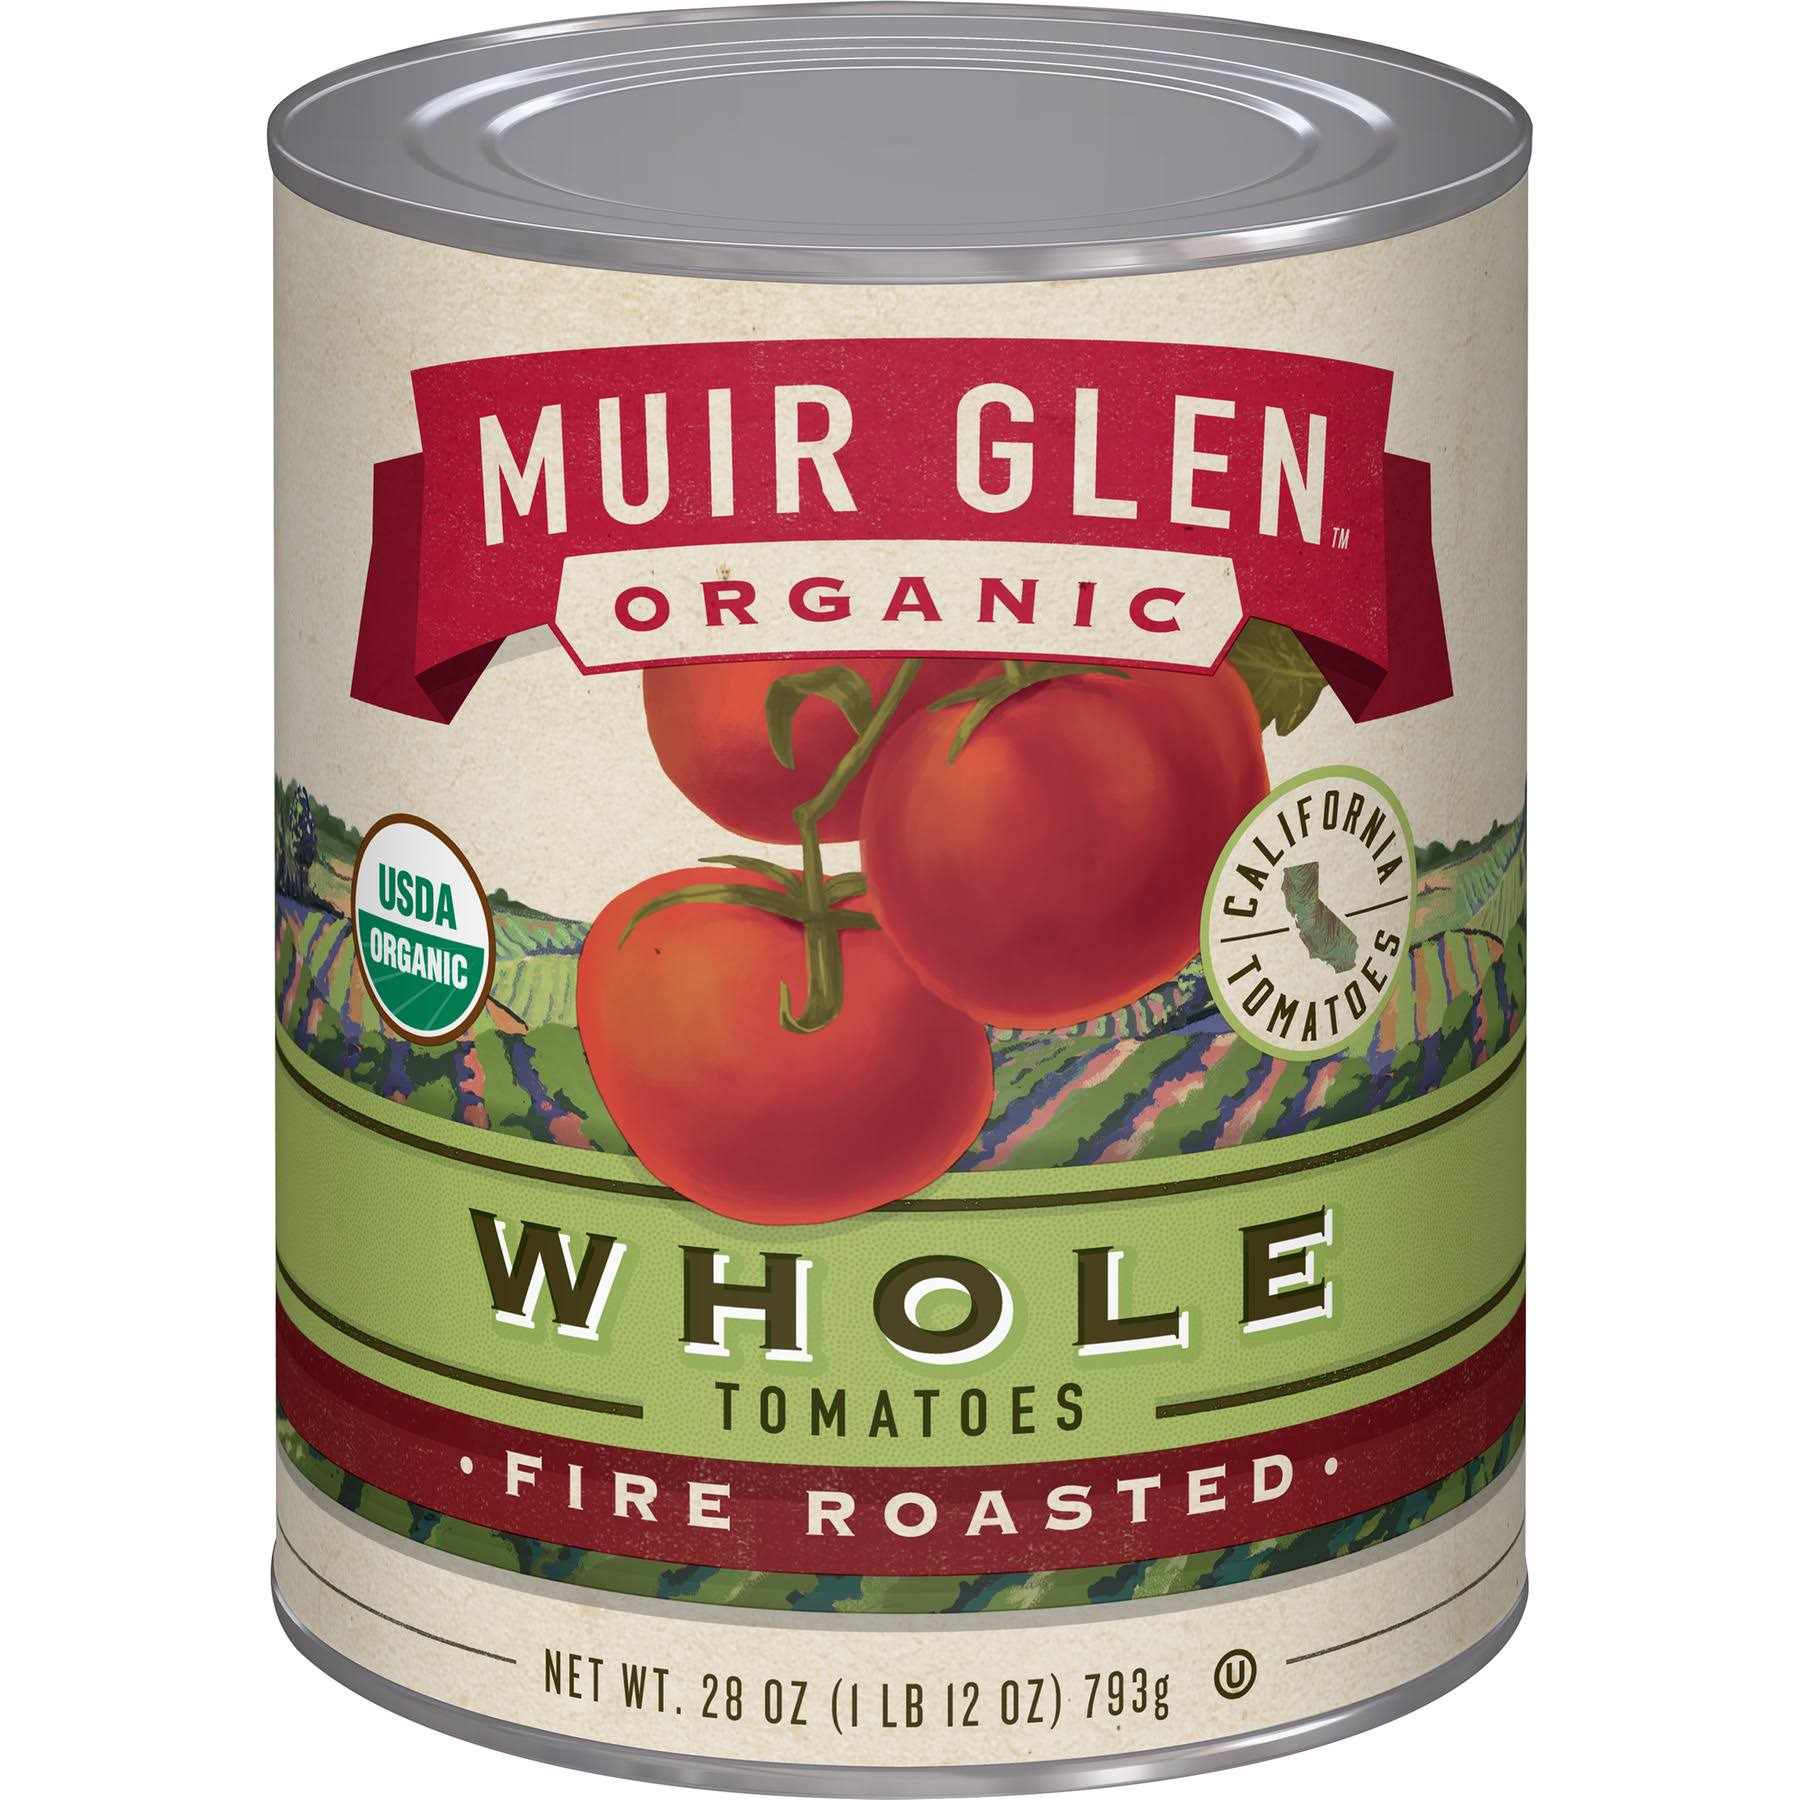 Muir Glen Organic Tomatoes - Whole, Fire Roasted, 794g